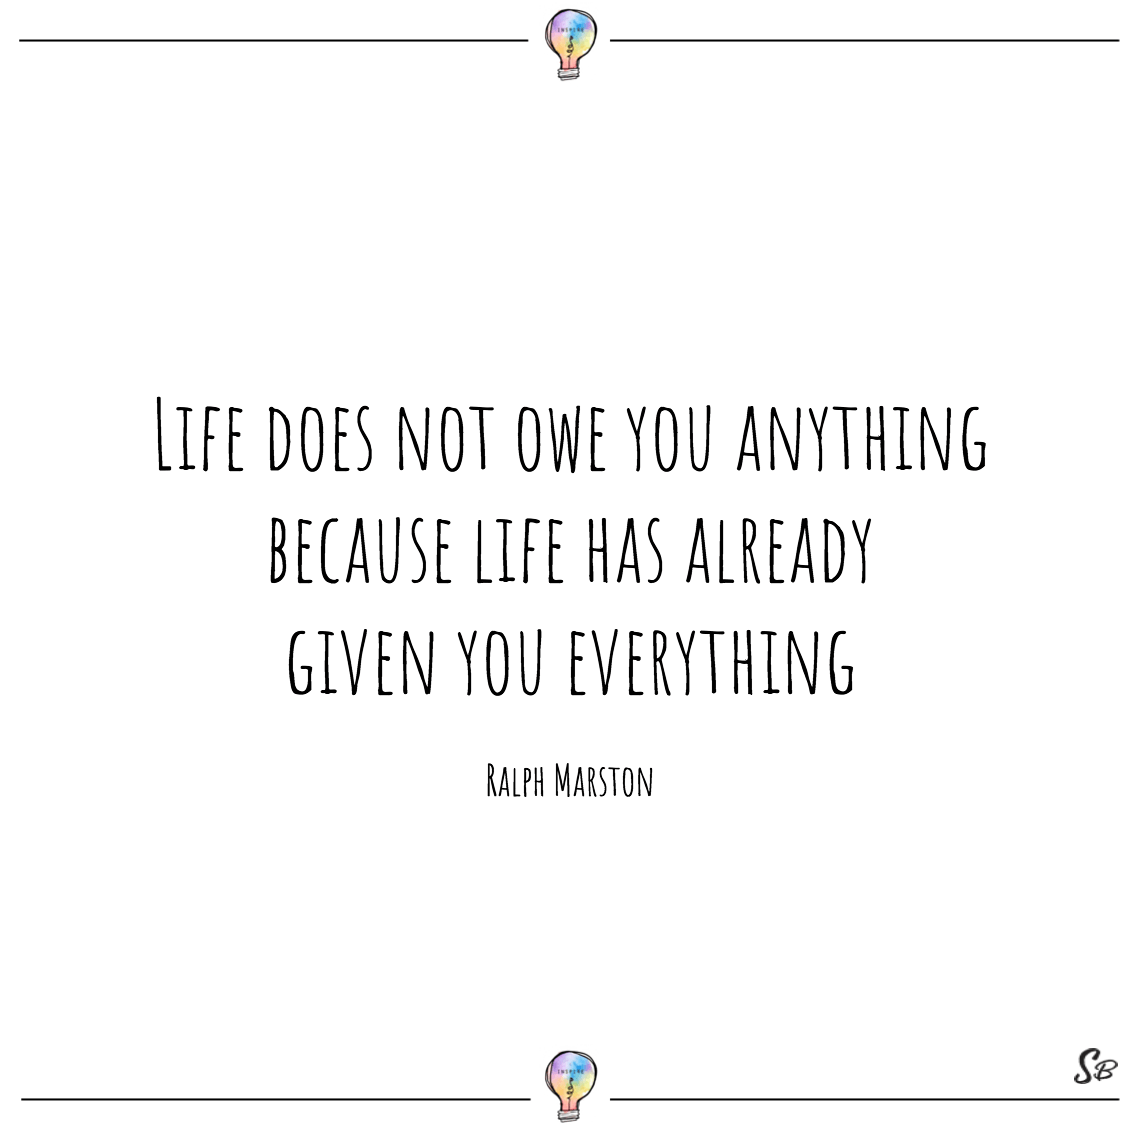 Life does not owe you anything because life has already given you everything ralph marston